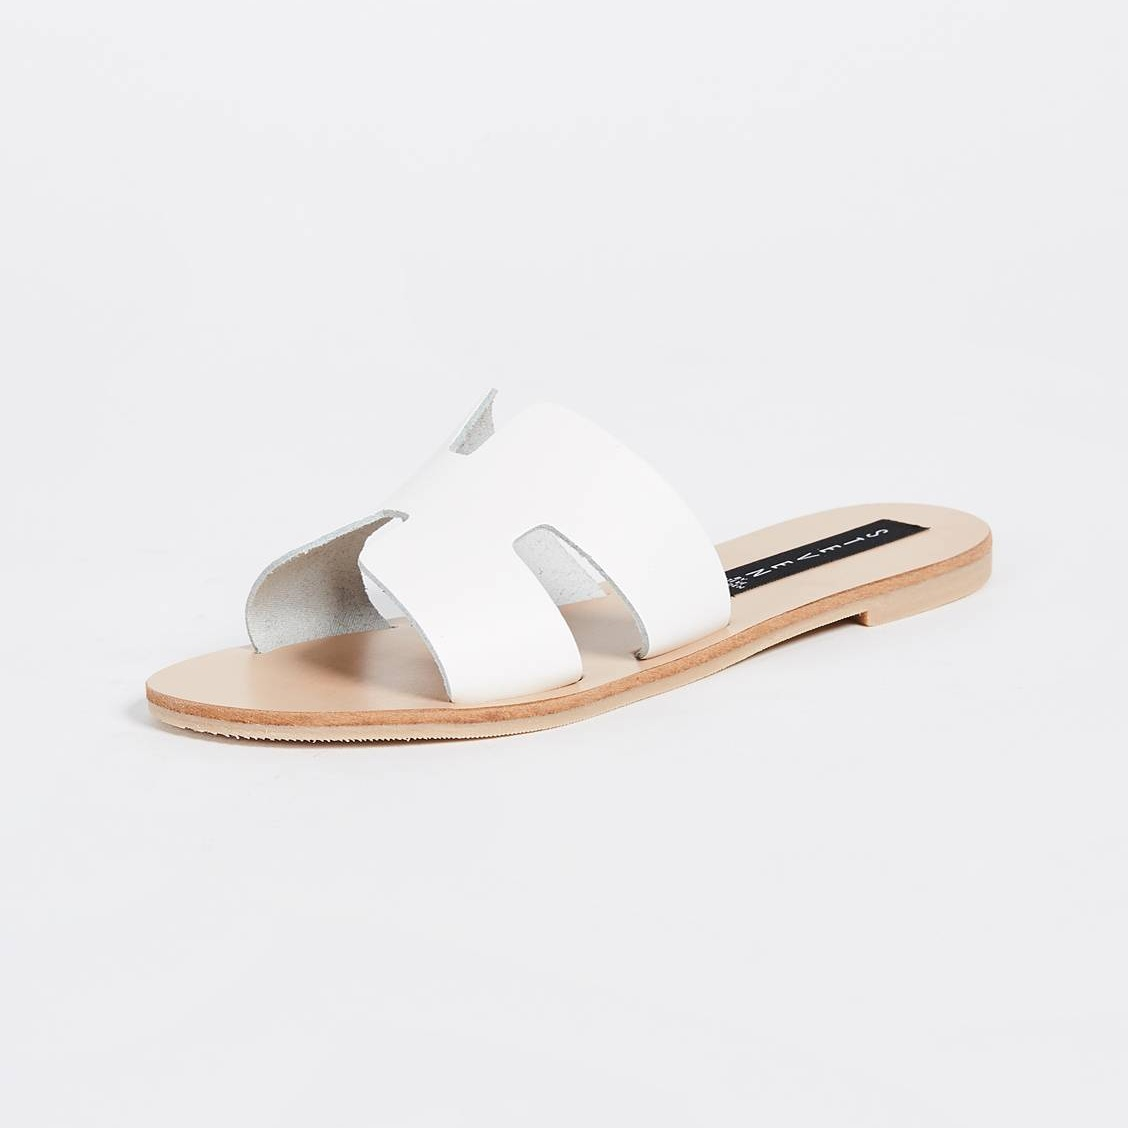 Steven Greece Slides ($59)